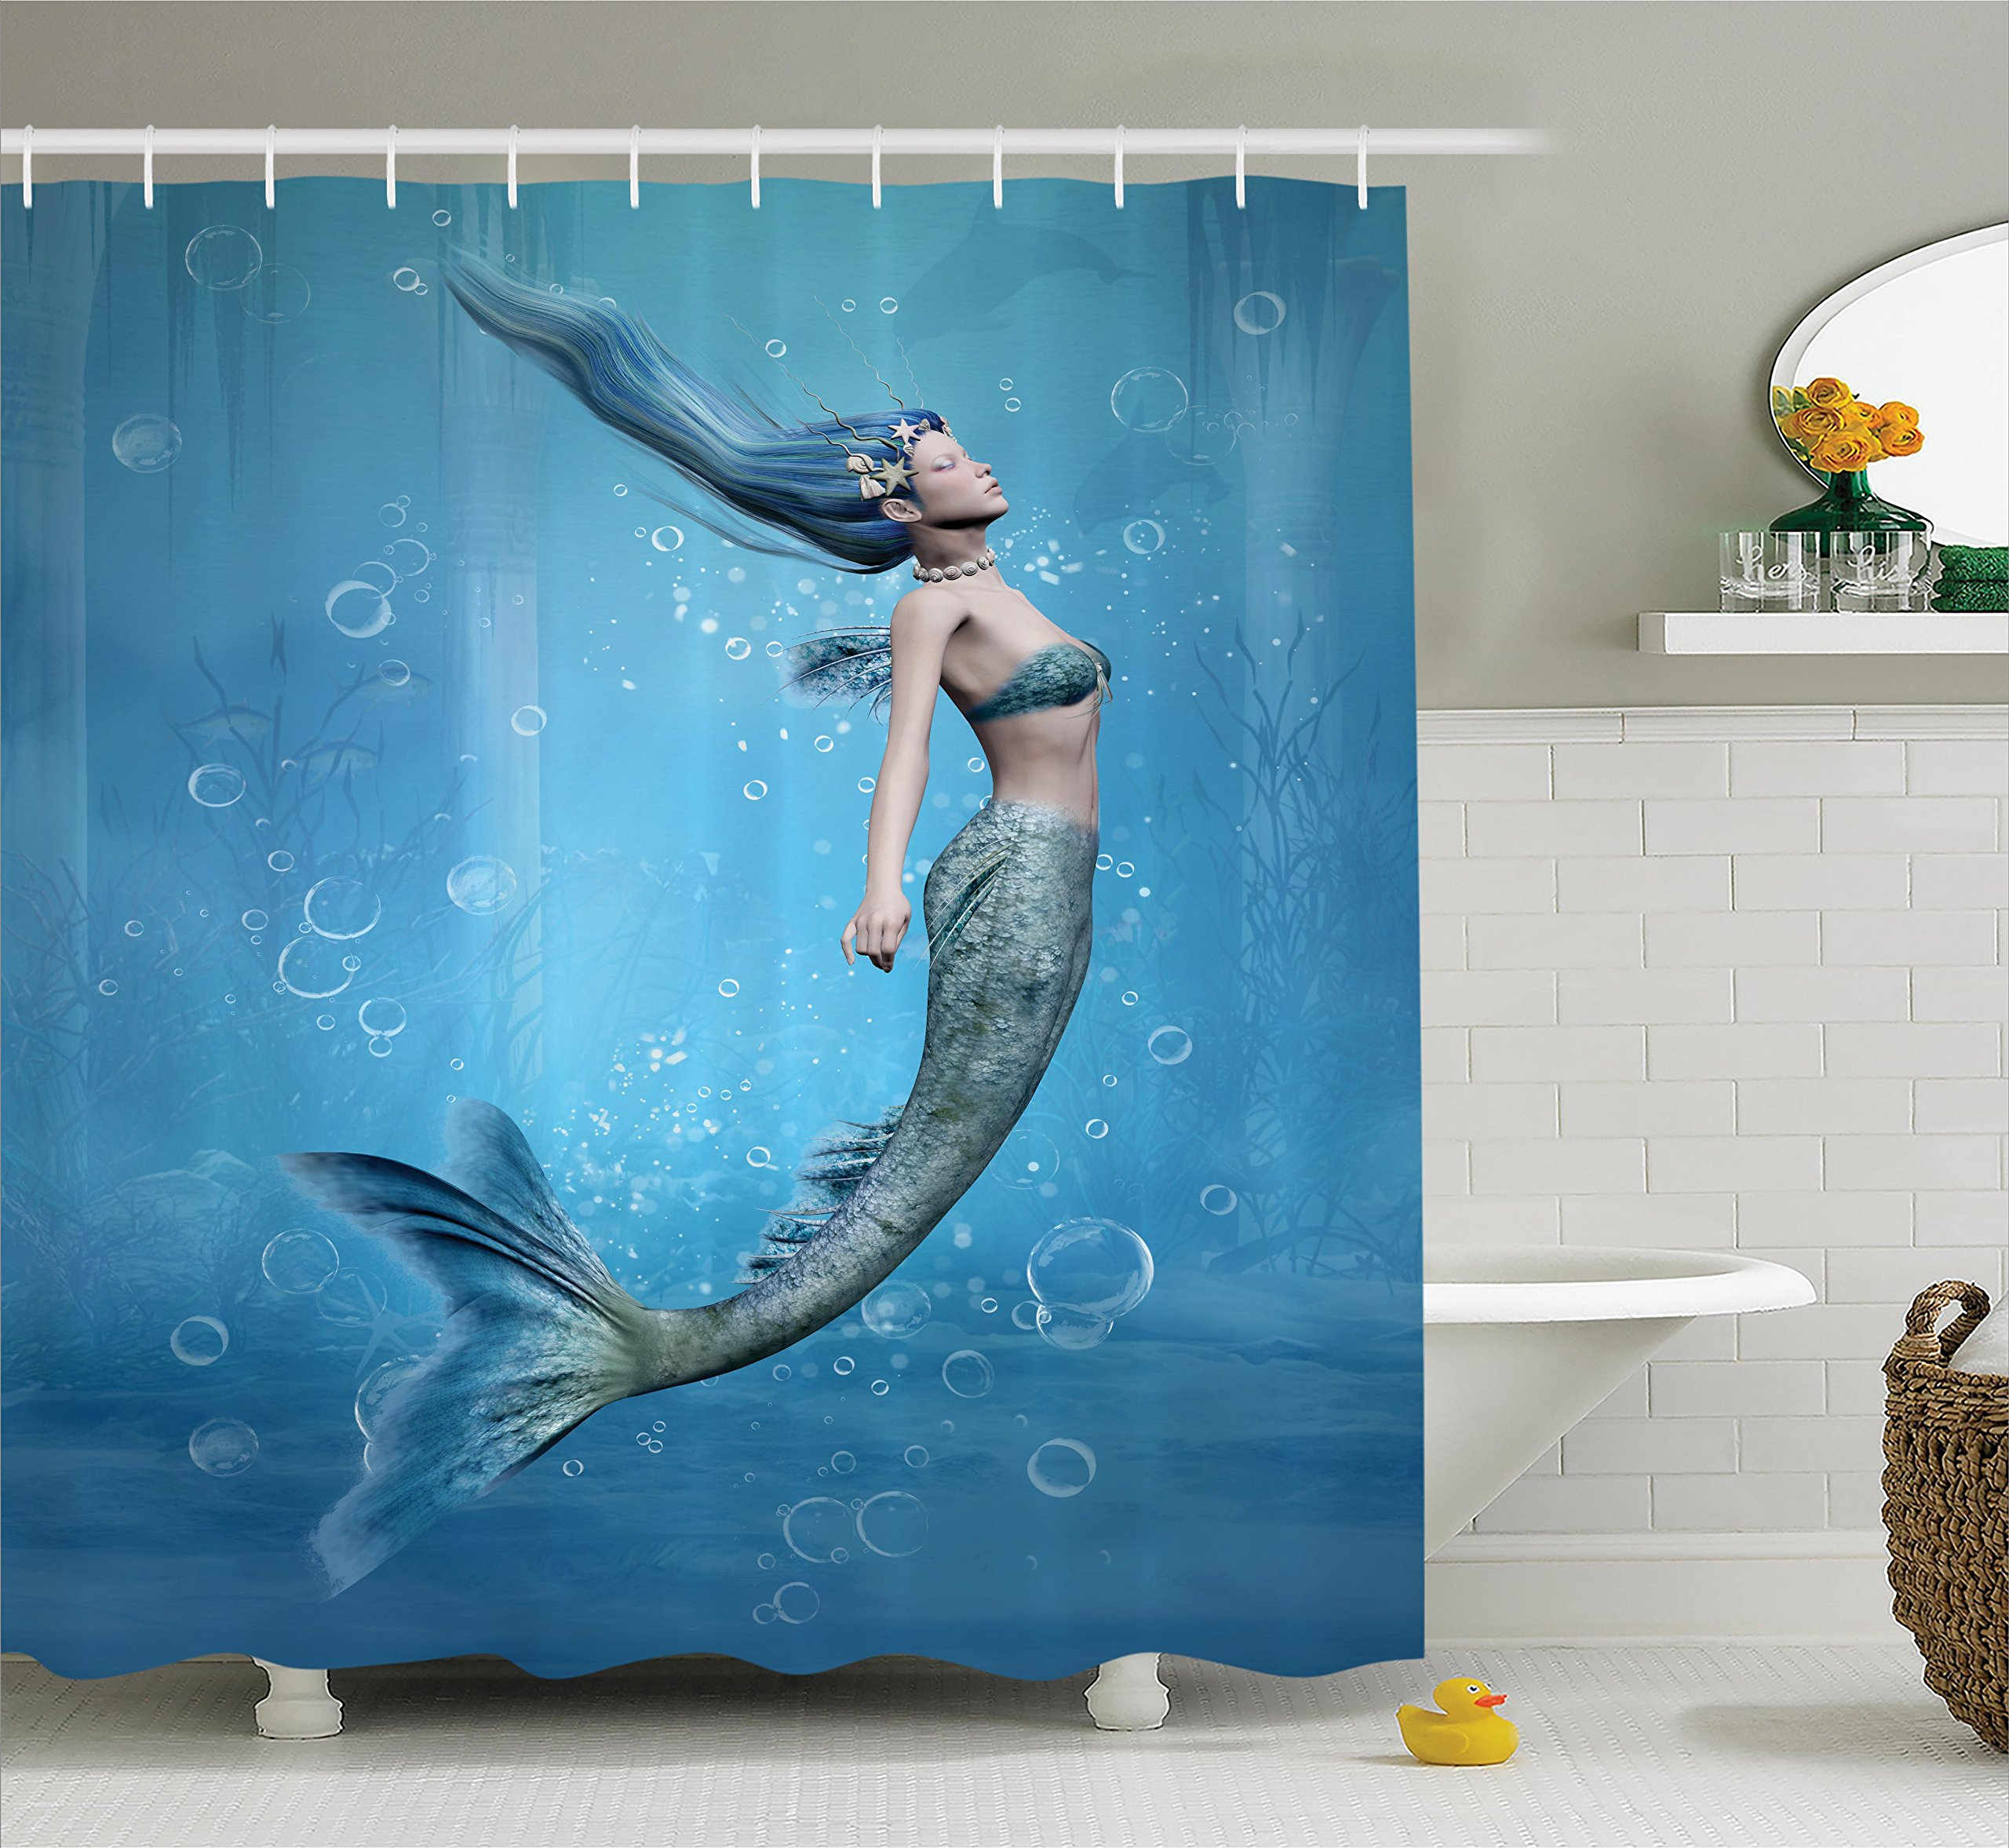 Ambesonne Mermaid Shower Curtain Blue Decor, Mermaid Fishtail Floating Bubbles Mythical Creature Fairy Ocean Life Art, Bathroom Accessories, with Hooks, 69W X 70L inches, Blue